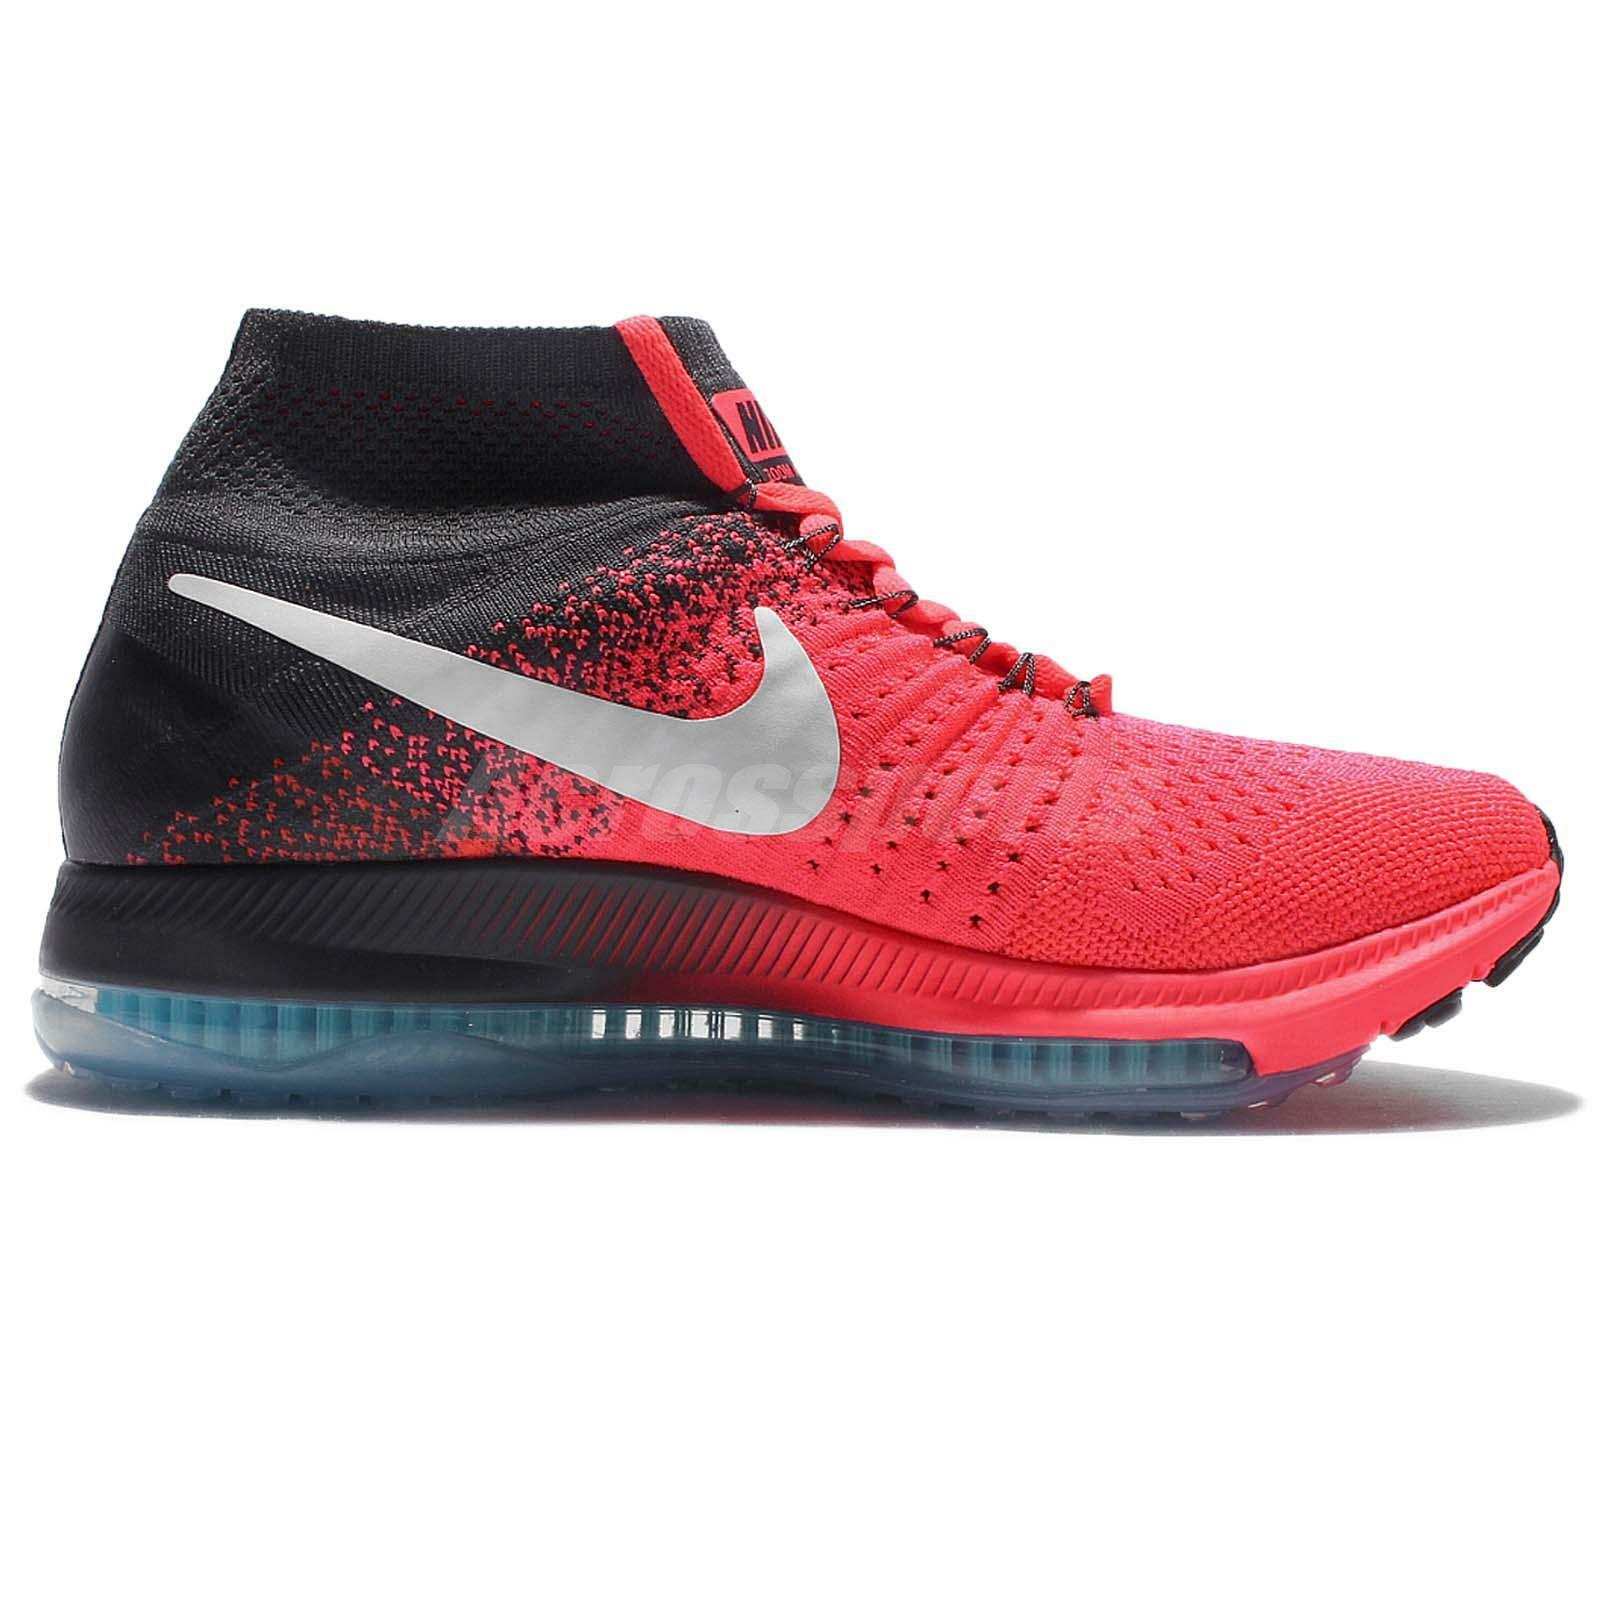 Nike Zoom All Out Flyknit 845361-600 Hot Punch/Anthracite/White Wmn Sz 7.5